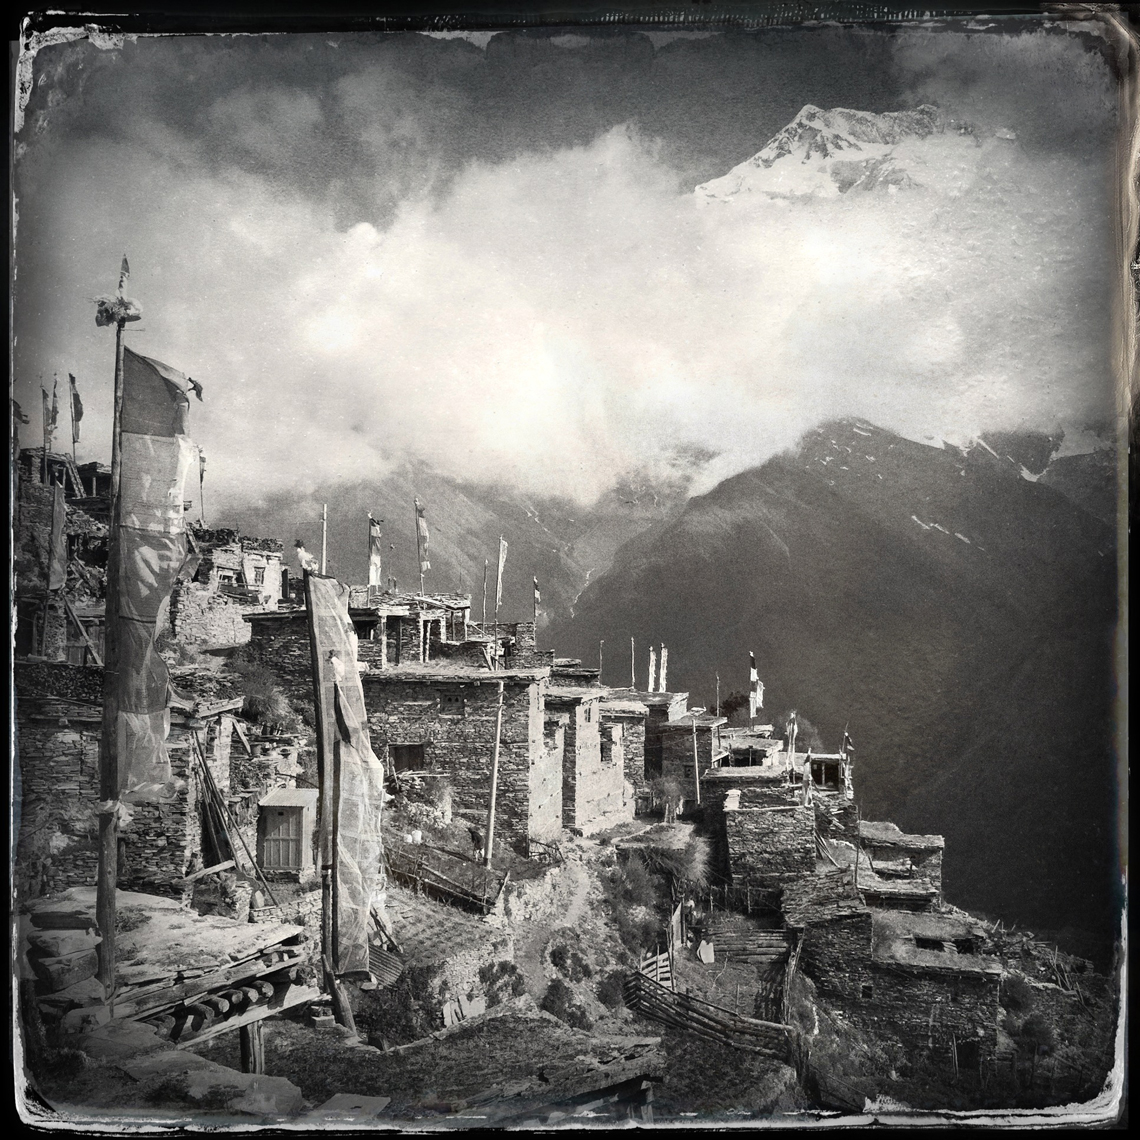 Jon Wyatt Photography - Village in Nepal. Hipstamatic